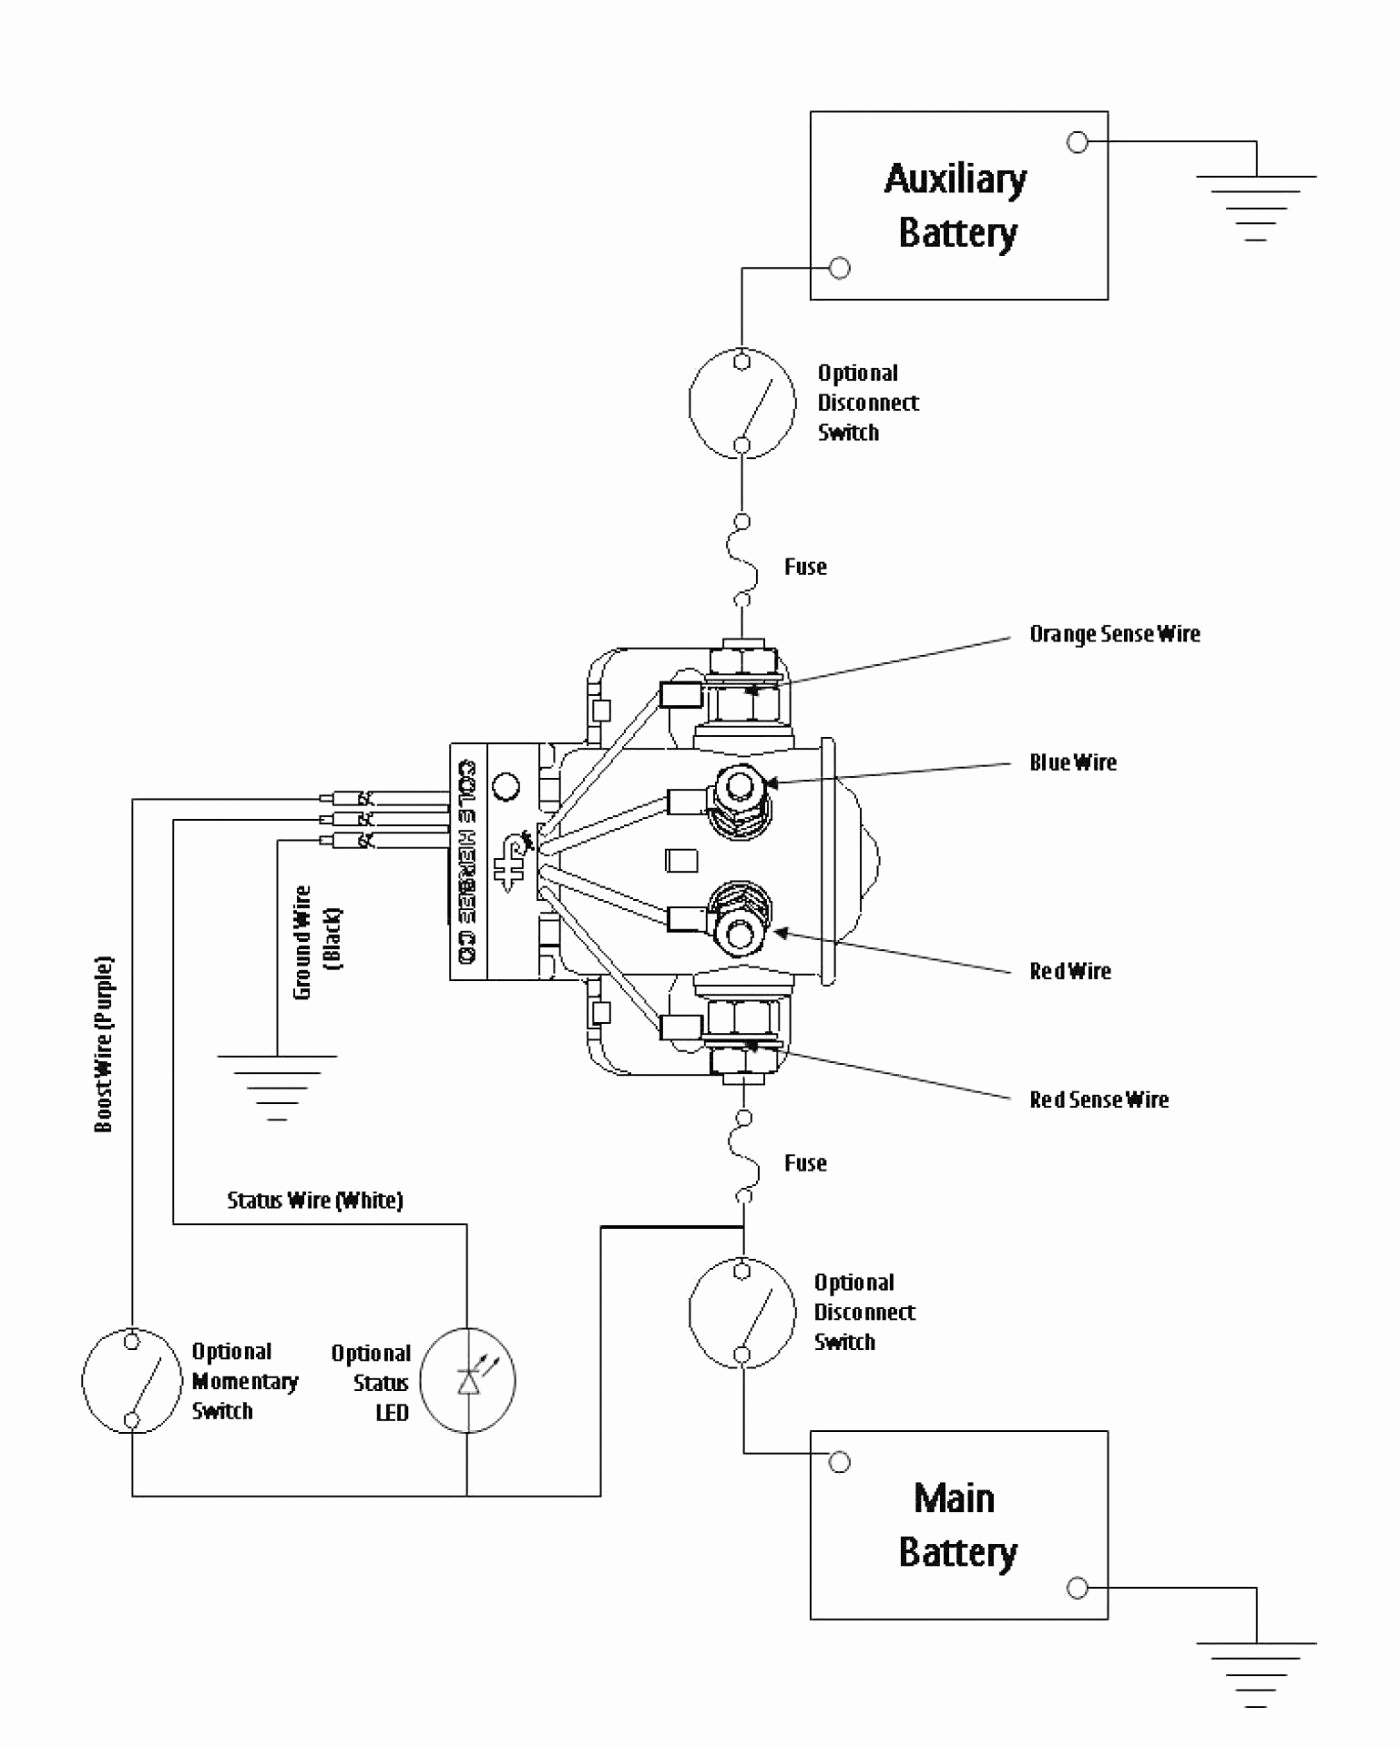 12 Volt Relay Wiring Diagram | Free Wiring Diagram